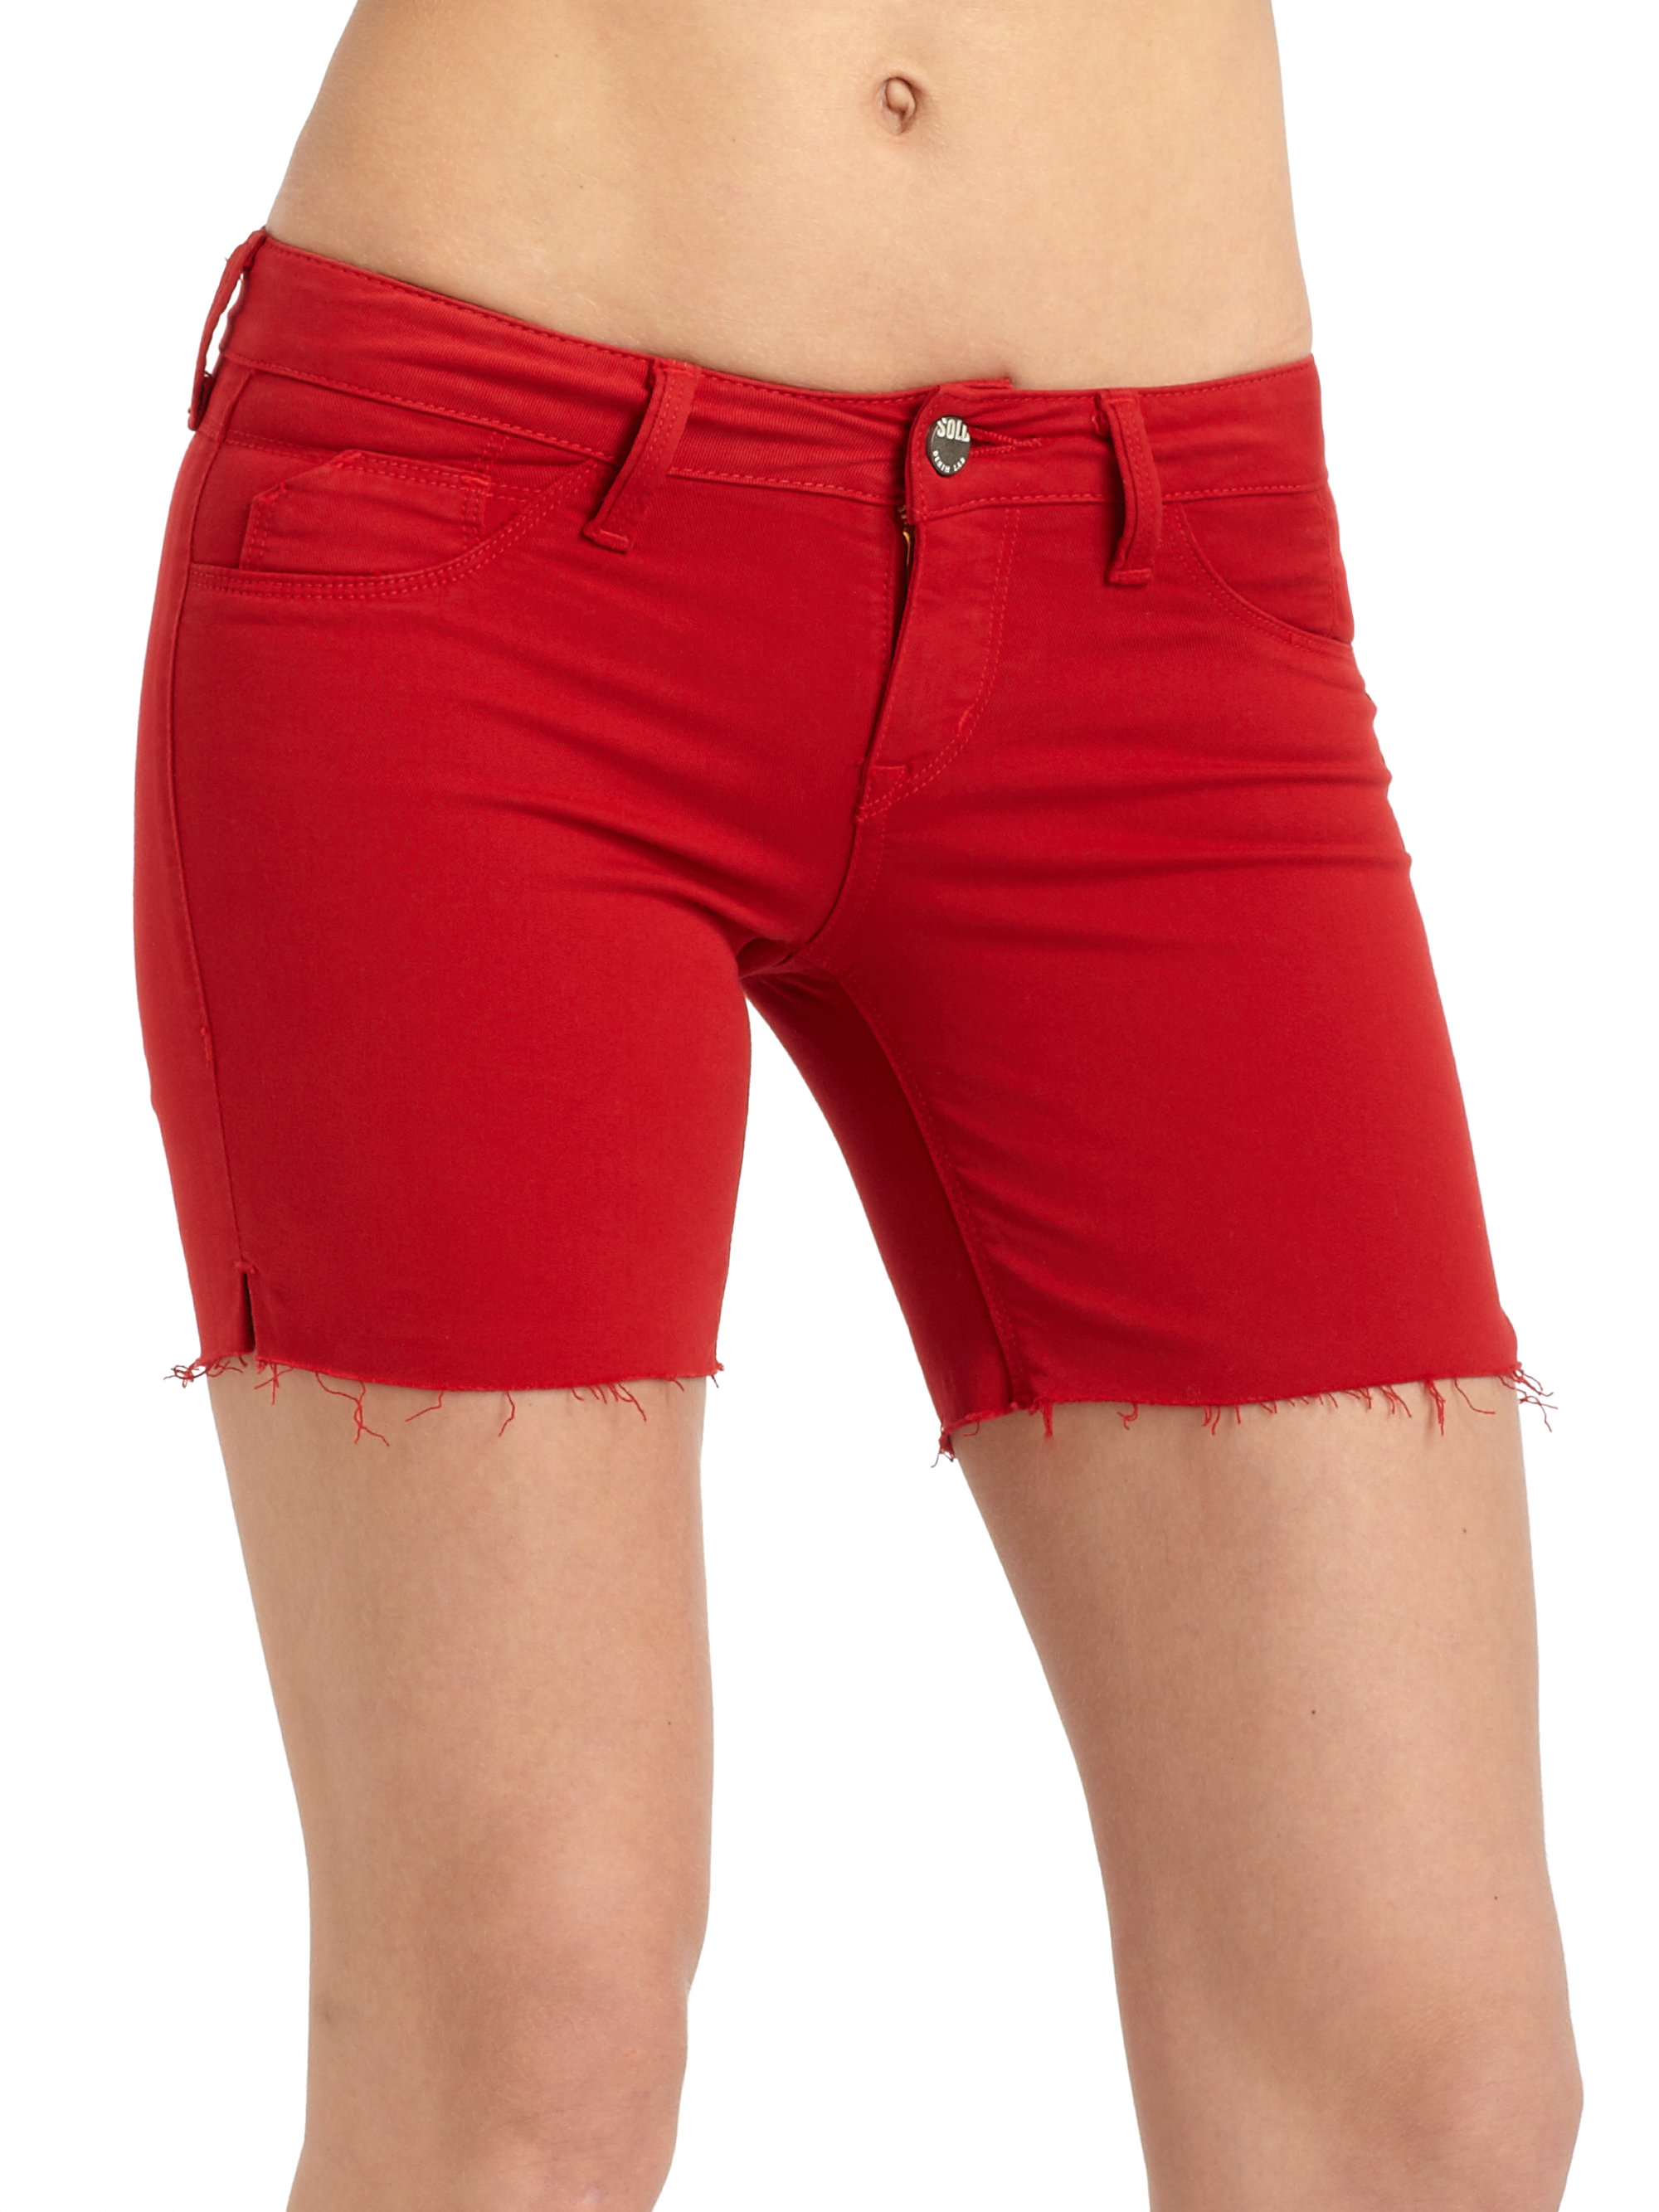 Sold design lab Parksde Colored Denim Shorts in Red | Lyst